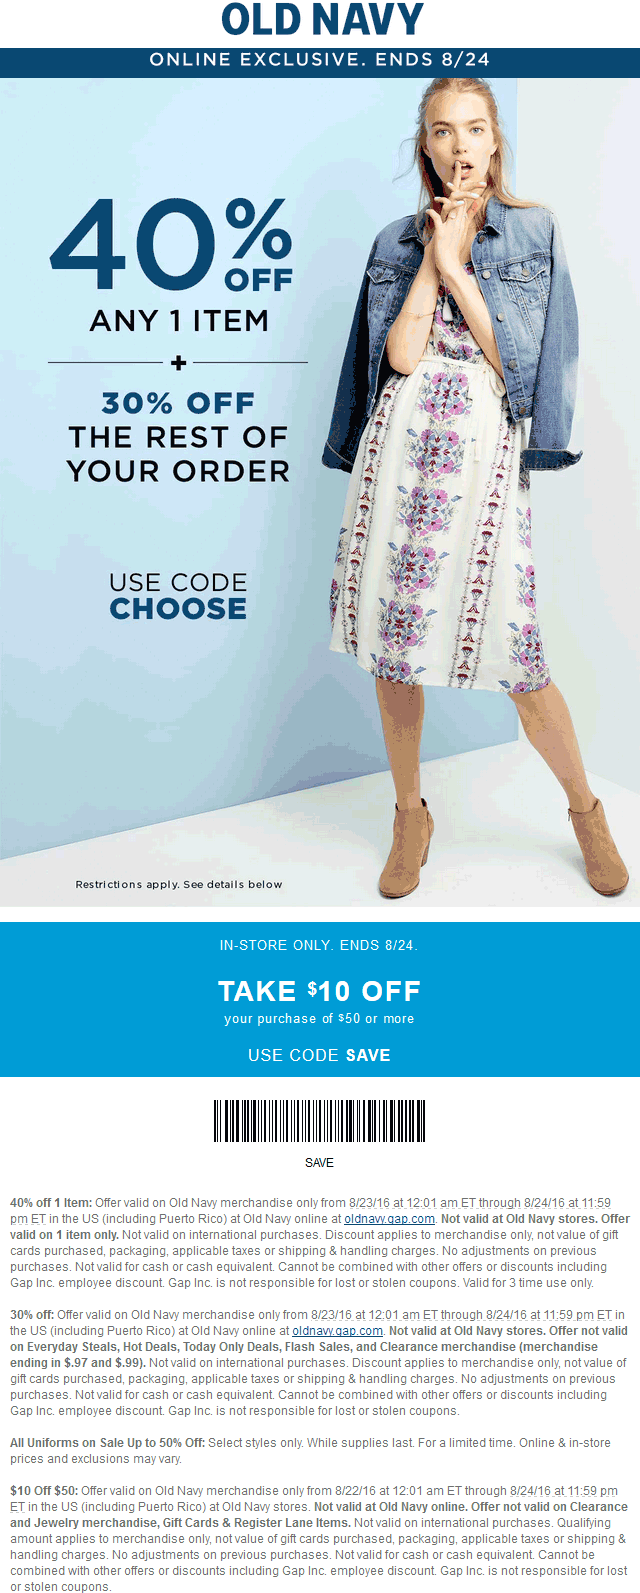 Old Navy Coupon June 2017 $10 off $50 at Old Navy, or 30-40% online via promo code CHOOSE